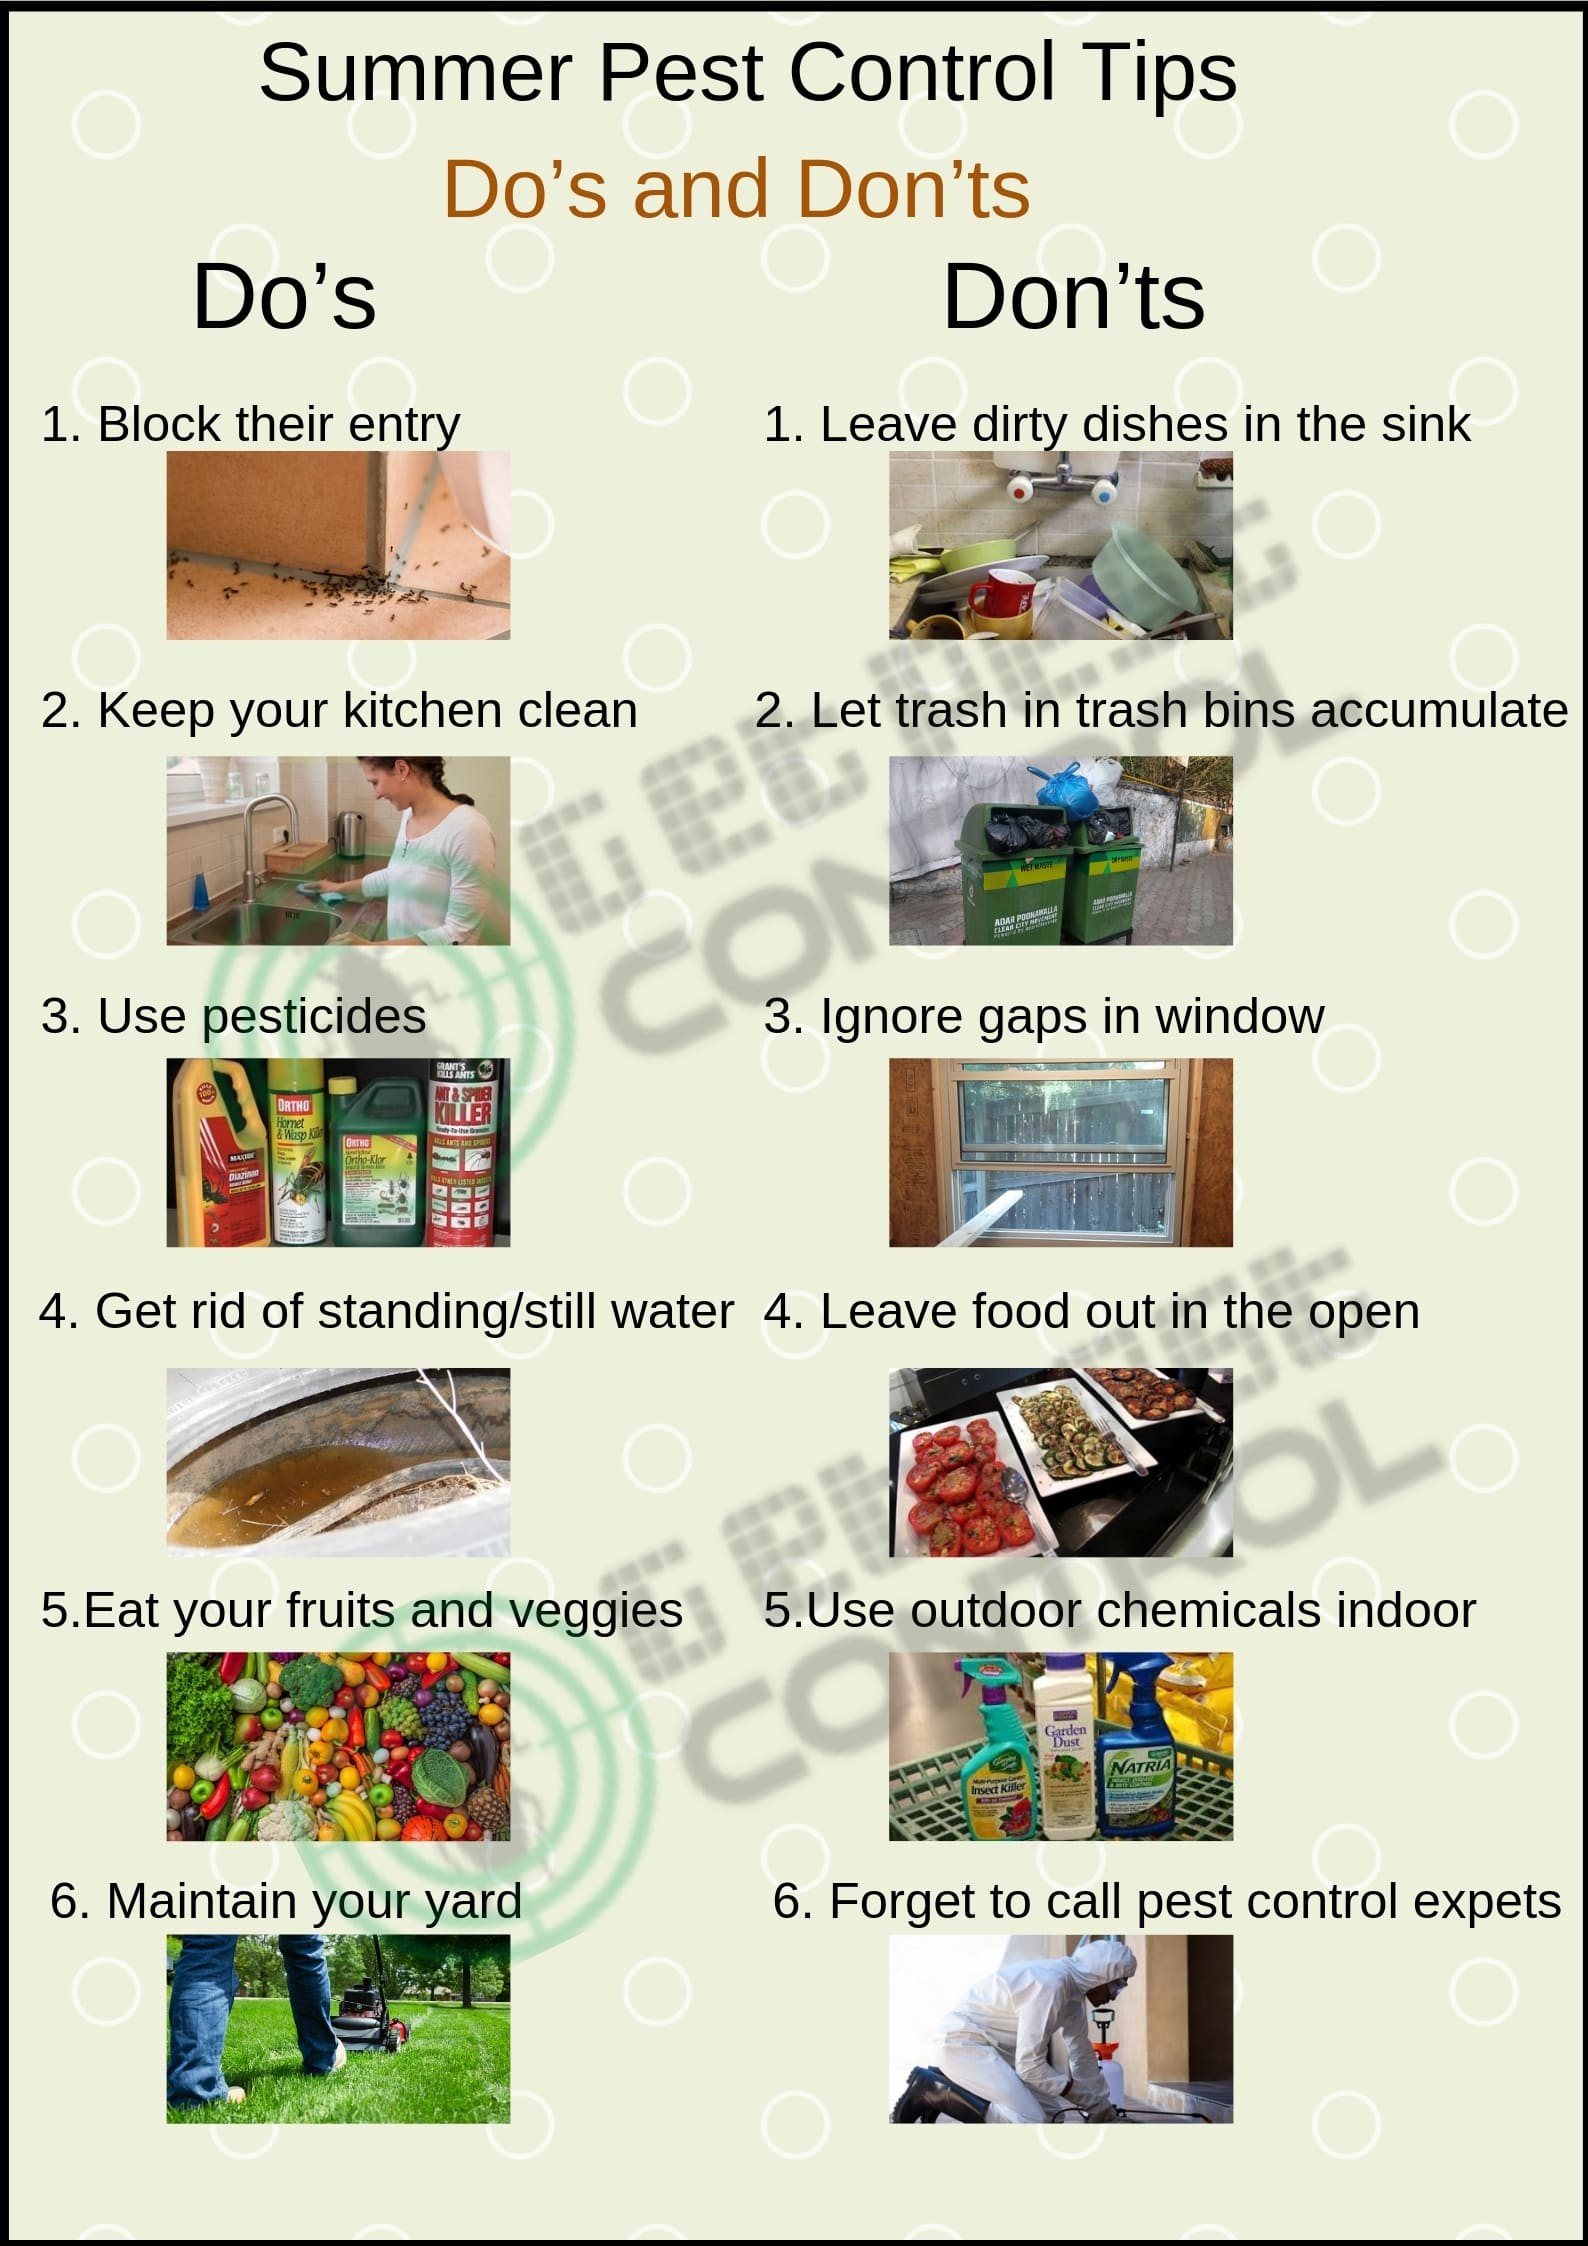 Pest Control Tips: Do's and Don'ts for This Summer Season